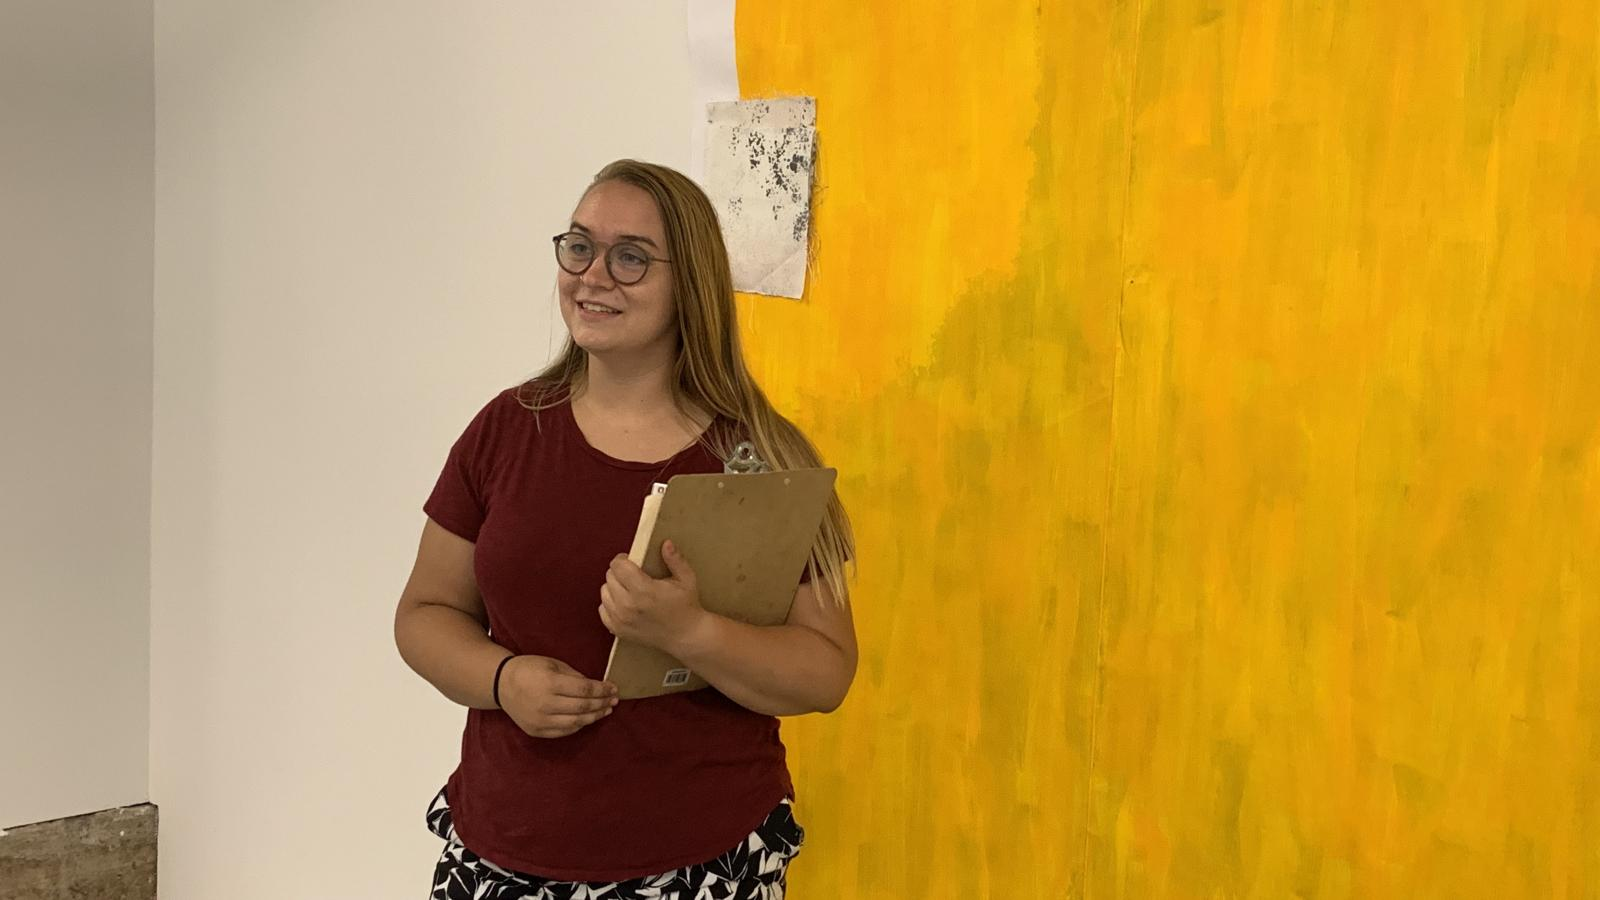 Joanna Giving a Gallery Tour in front of a Yellow Painting